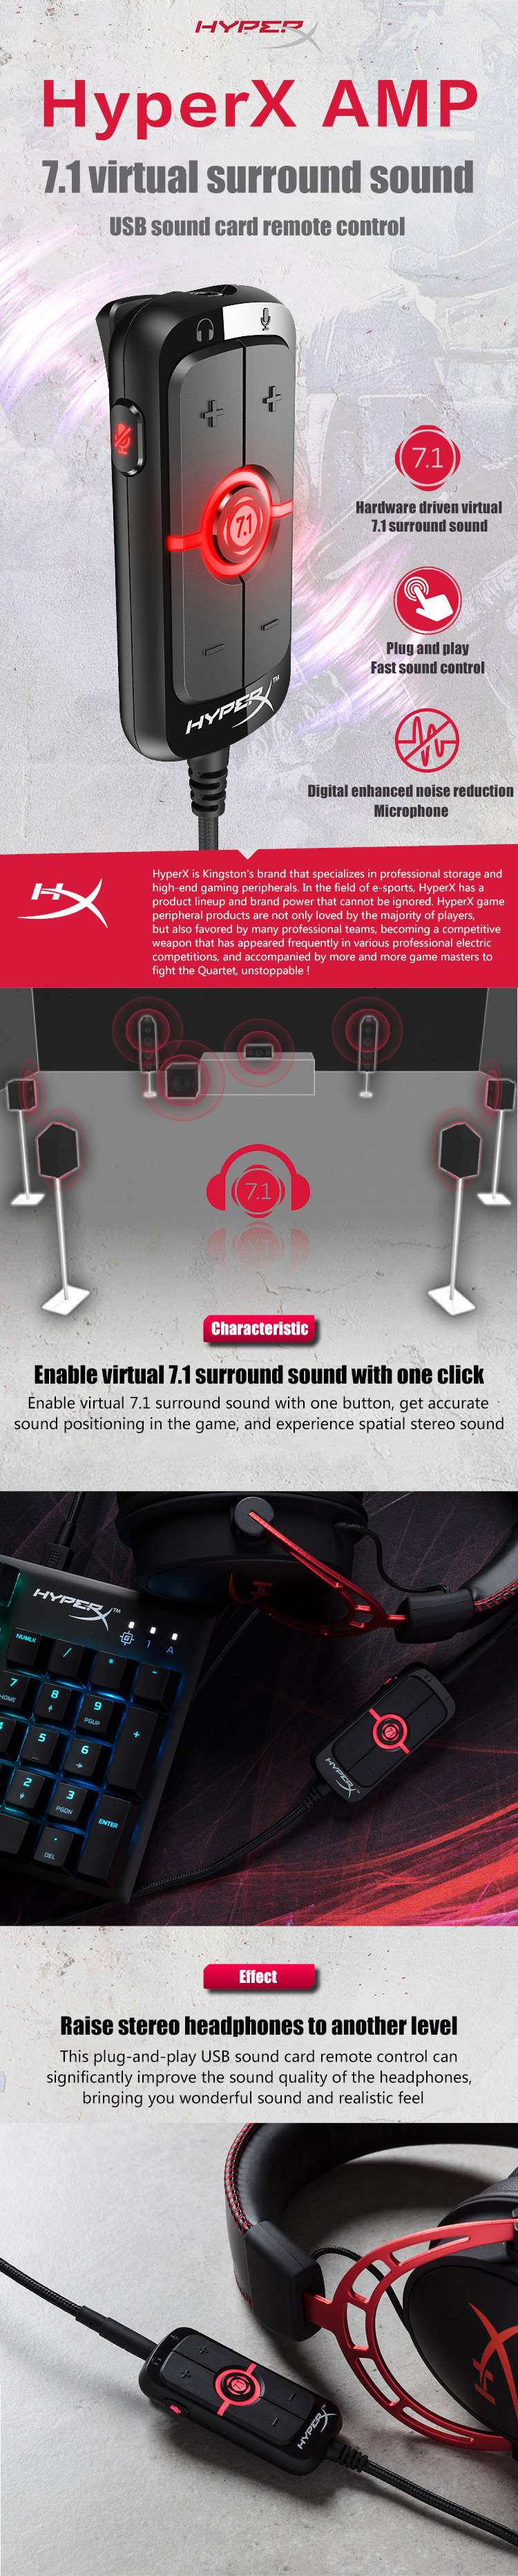 Kingston AMP HyperX Virtual 7.1 virtual surround sound game sound card remote control built-in DPS sound card 3